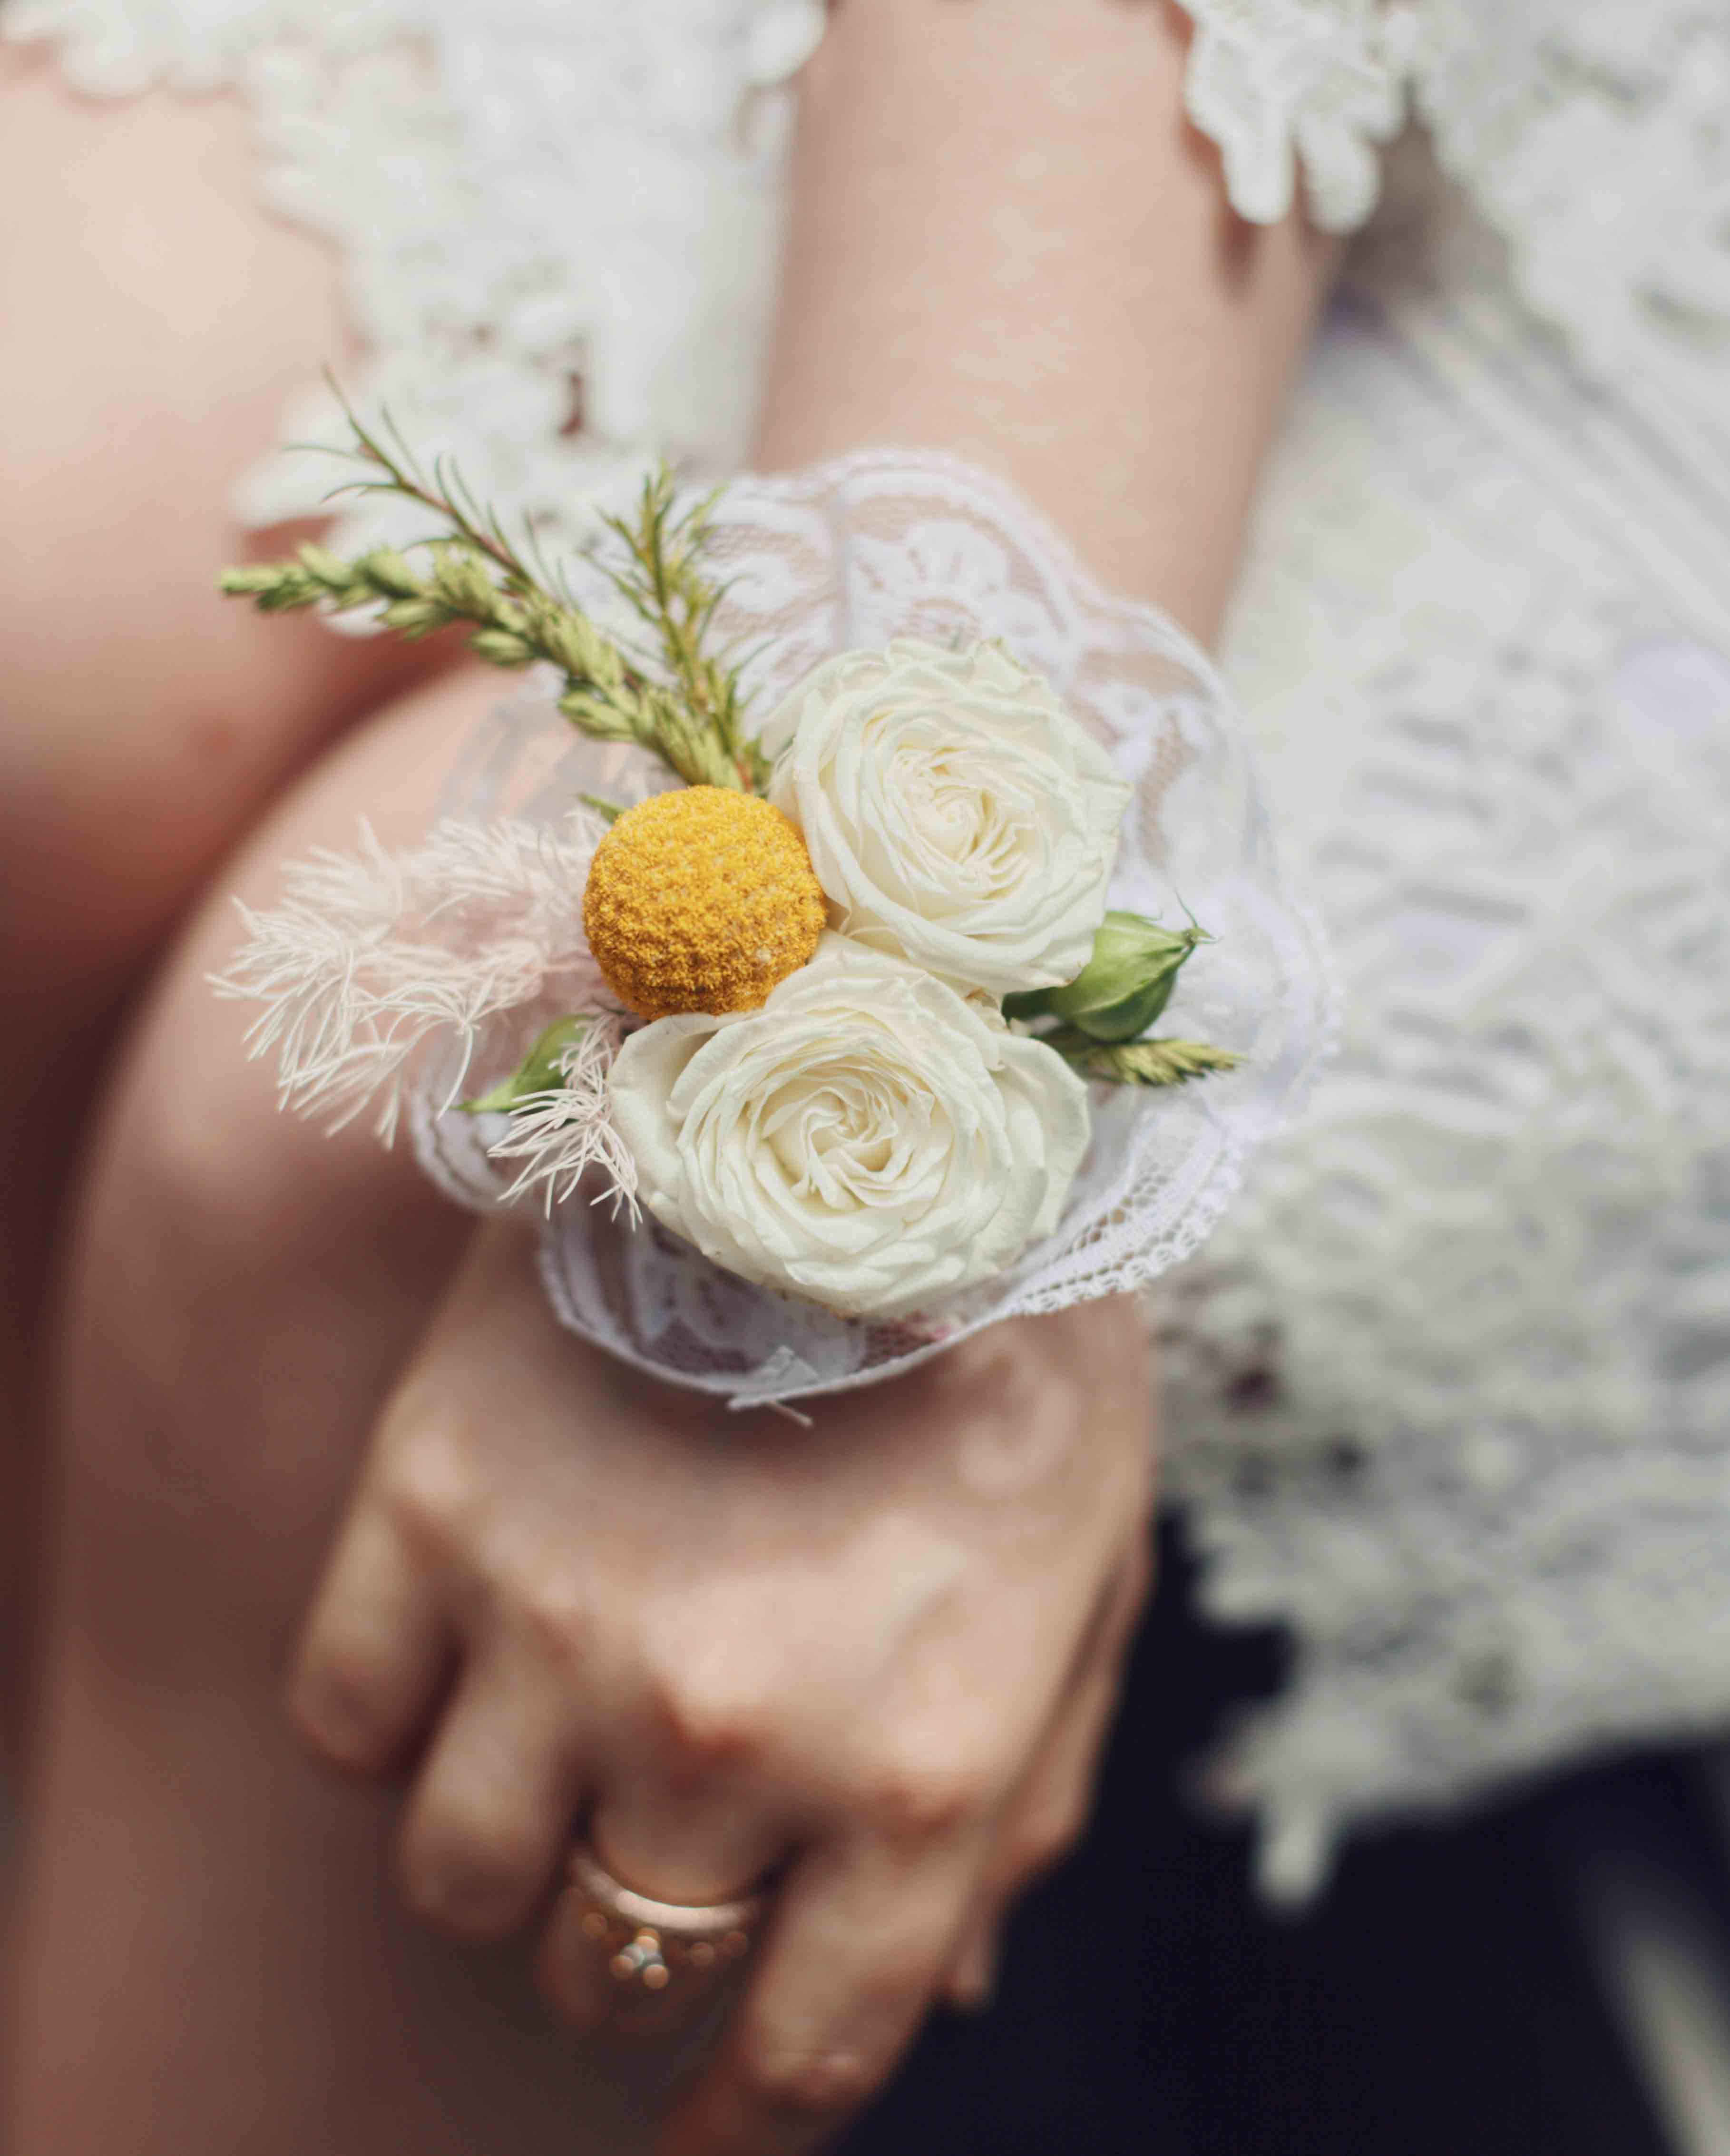 Corsage by Luxe Dream Floral Studio for iiiTech